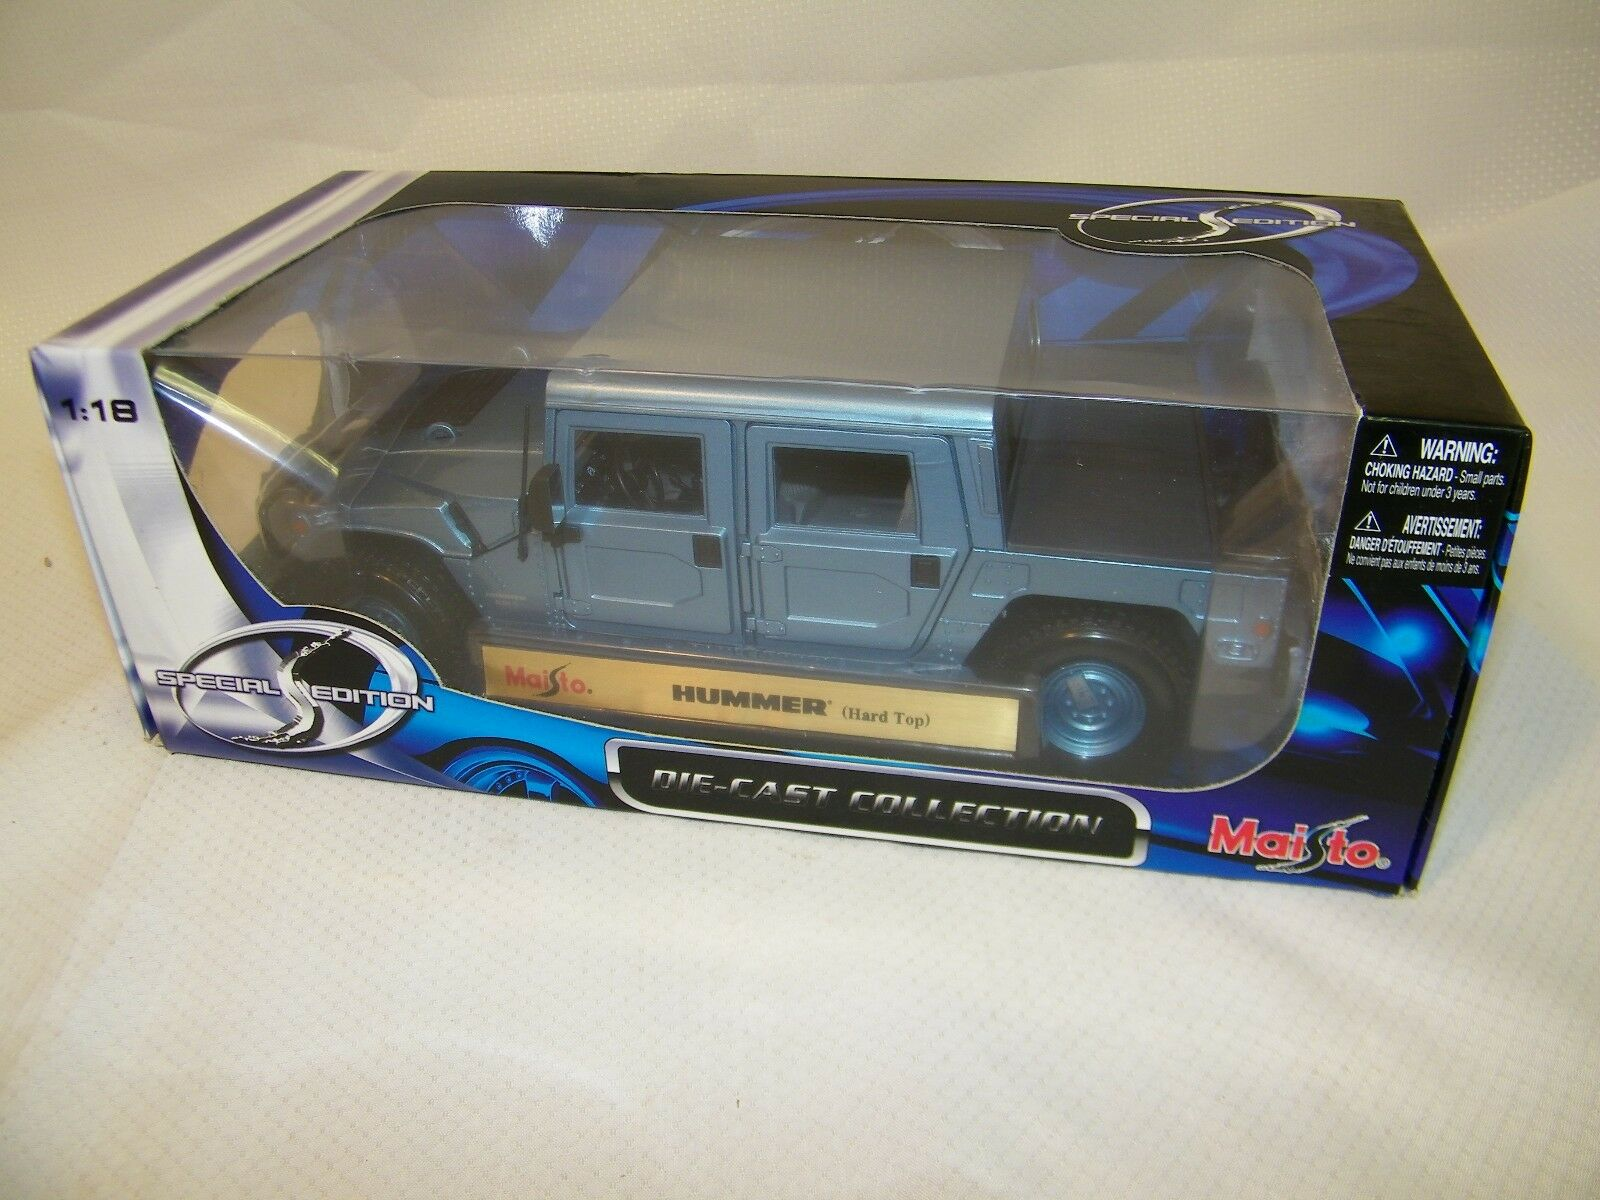 MAISTO 30857 1 18 scale, HUMMER HARD TOP DIE CAST COLLECTION SPECIAL EDITION